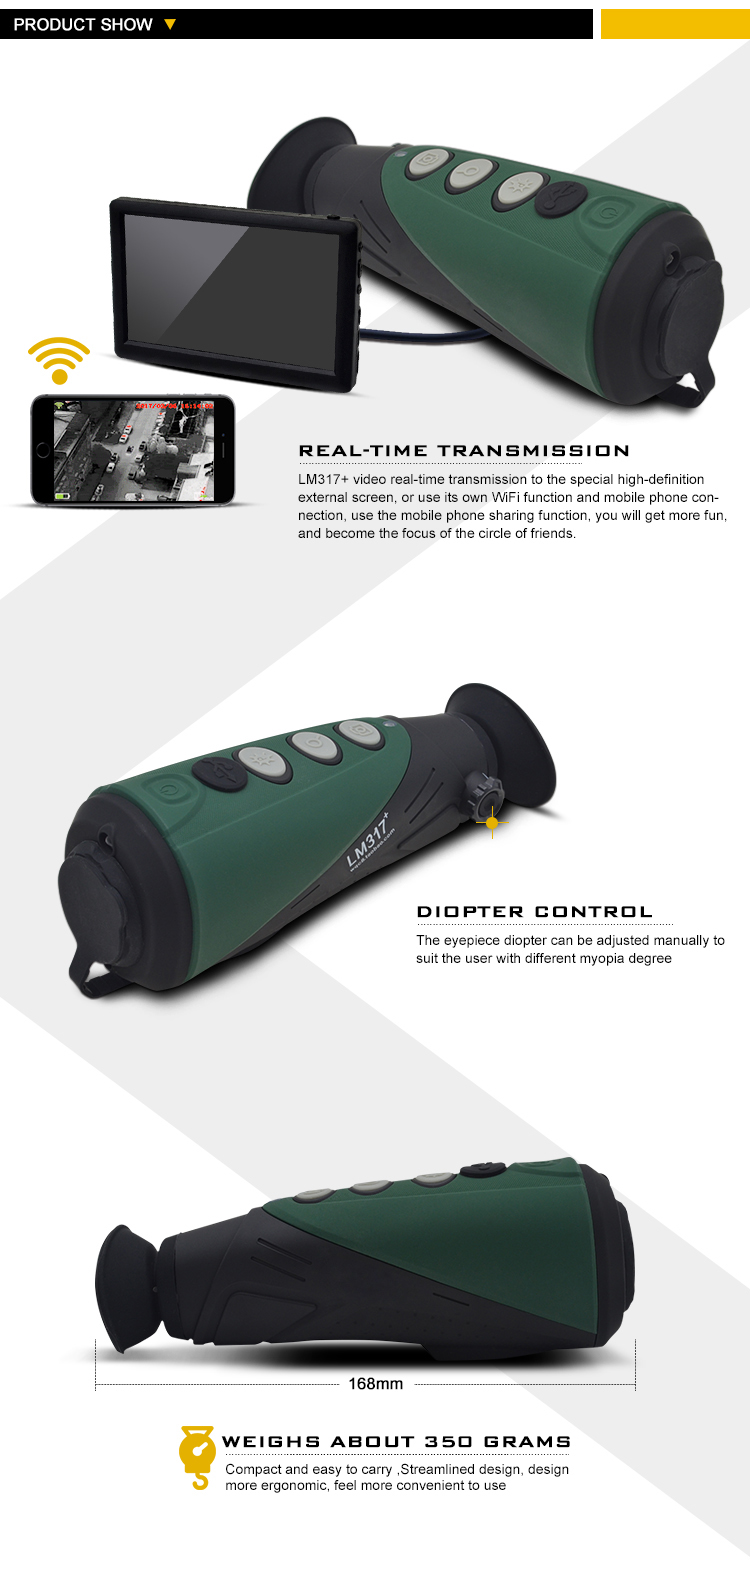 LMIR Monocular Night Vision Infrared Thermography Camera Imager for hunting